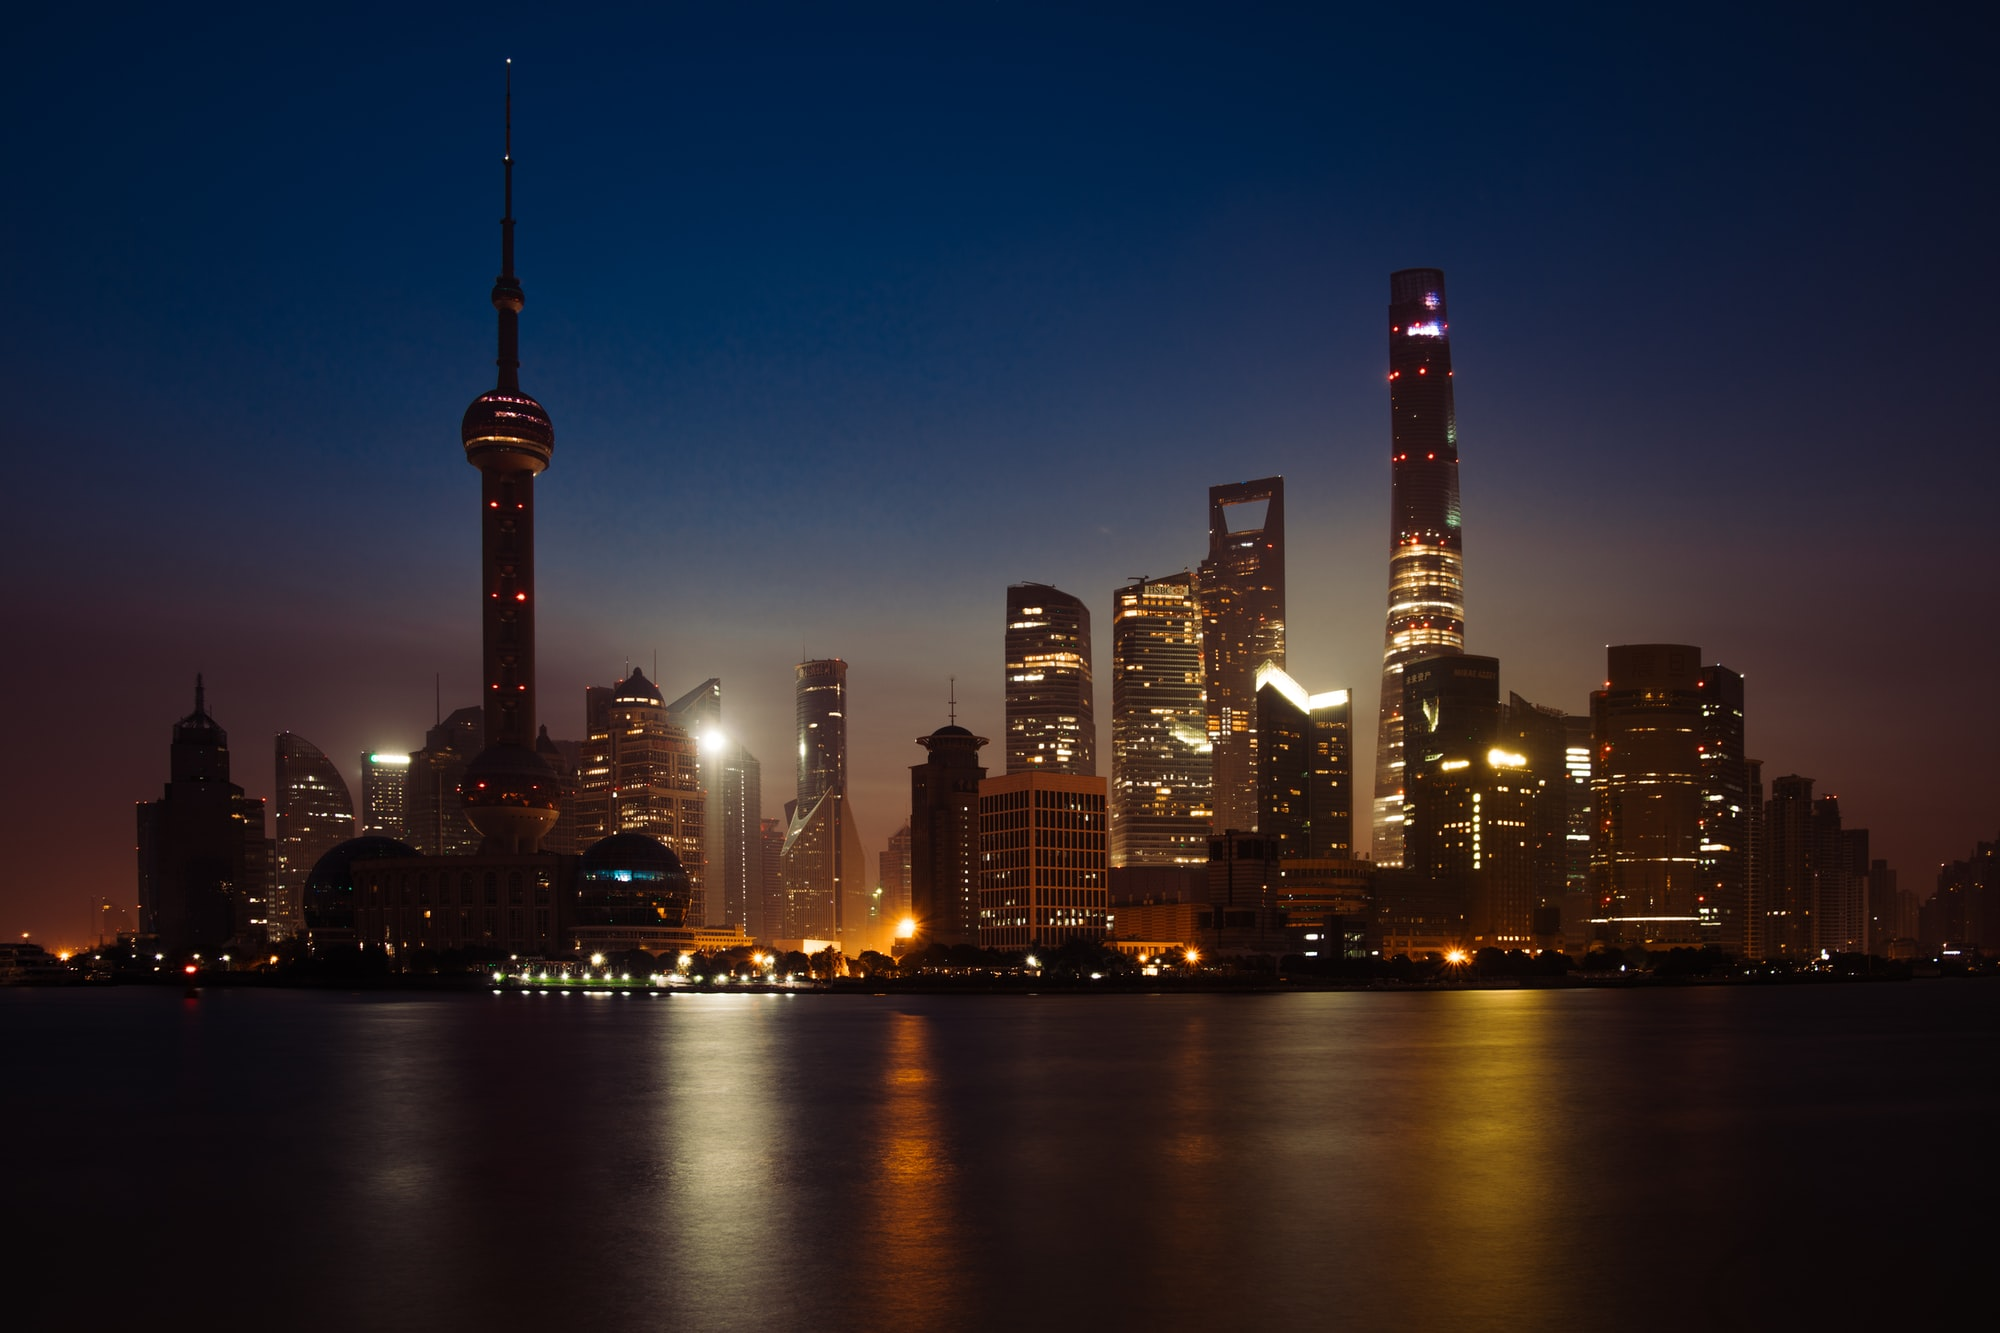 Overwork Culture: The Dark Side of China's Thriving Economy